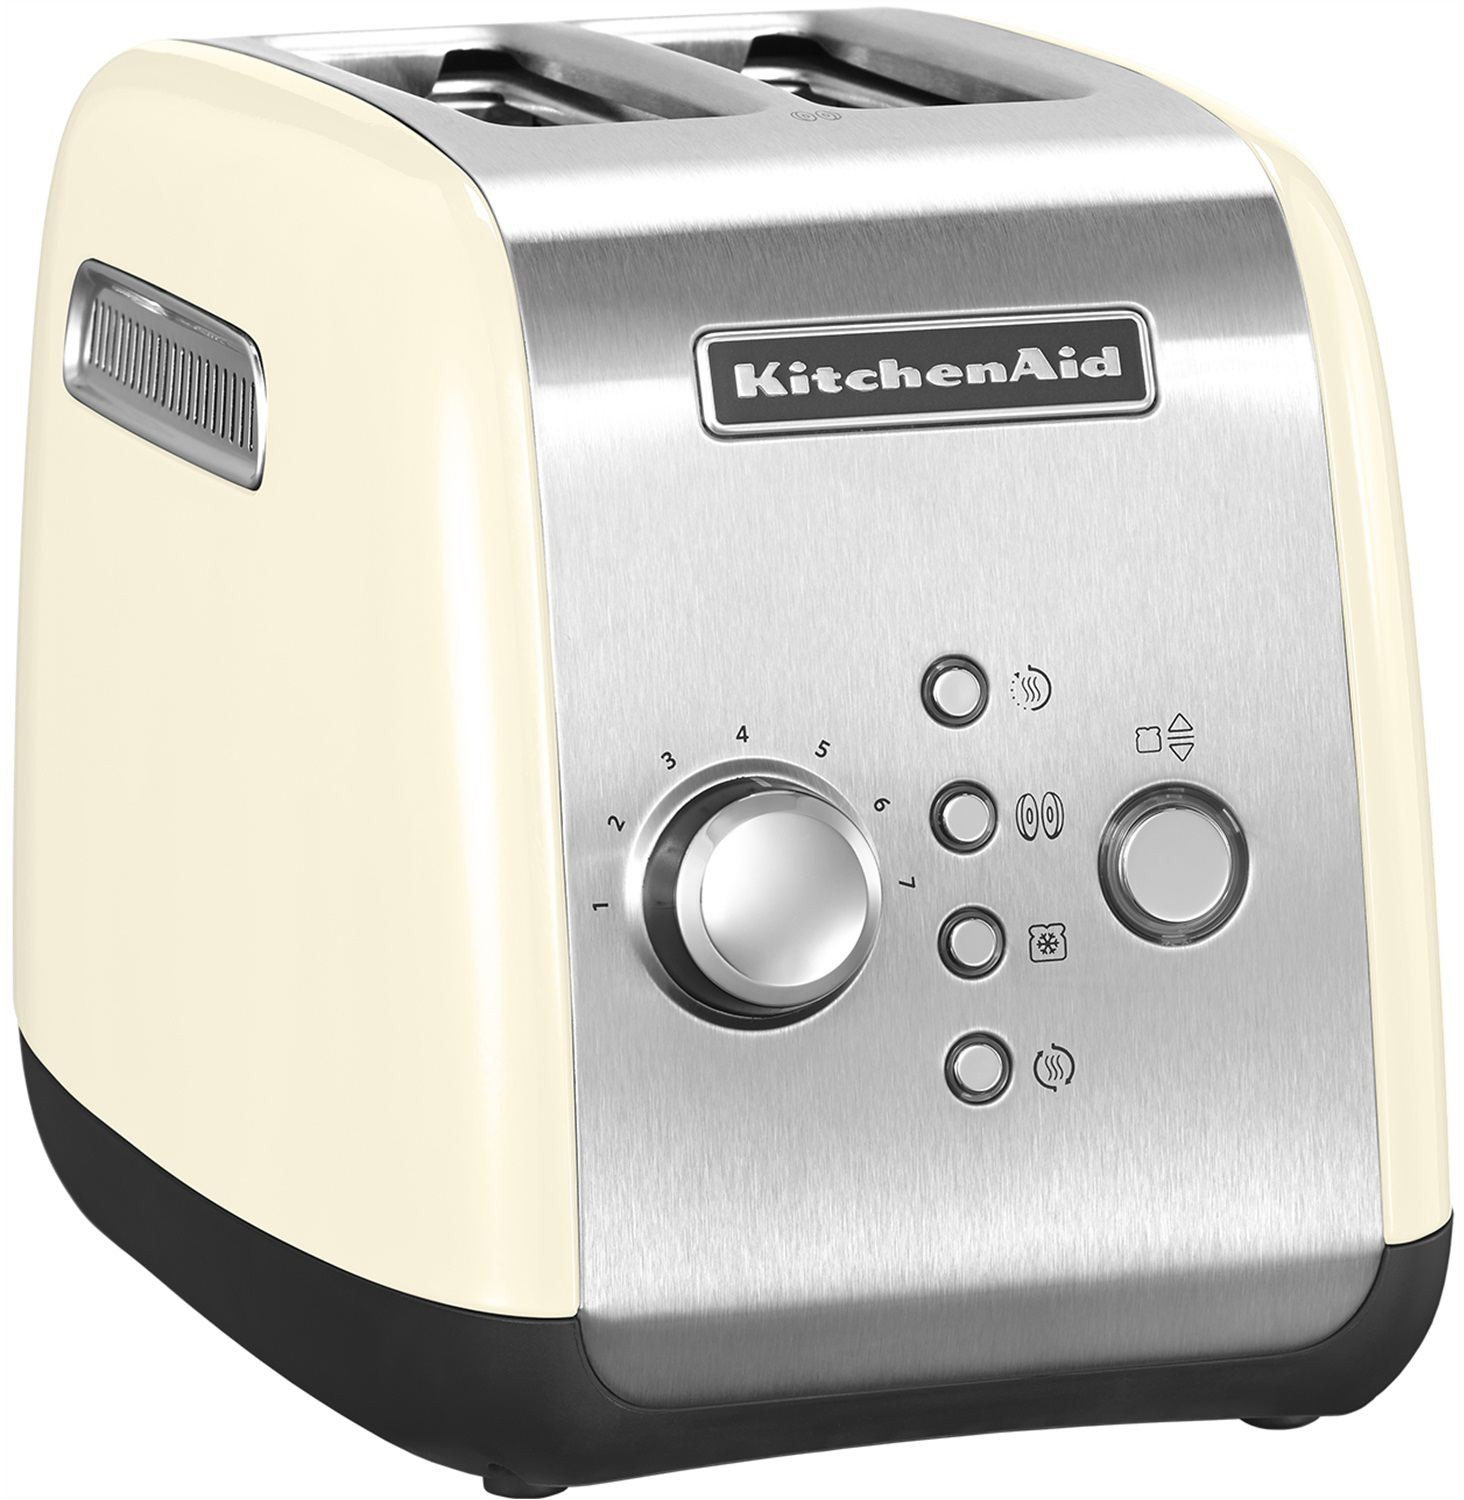 KITCHENAID - 5 KMT 221 EAC